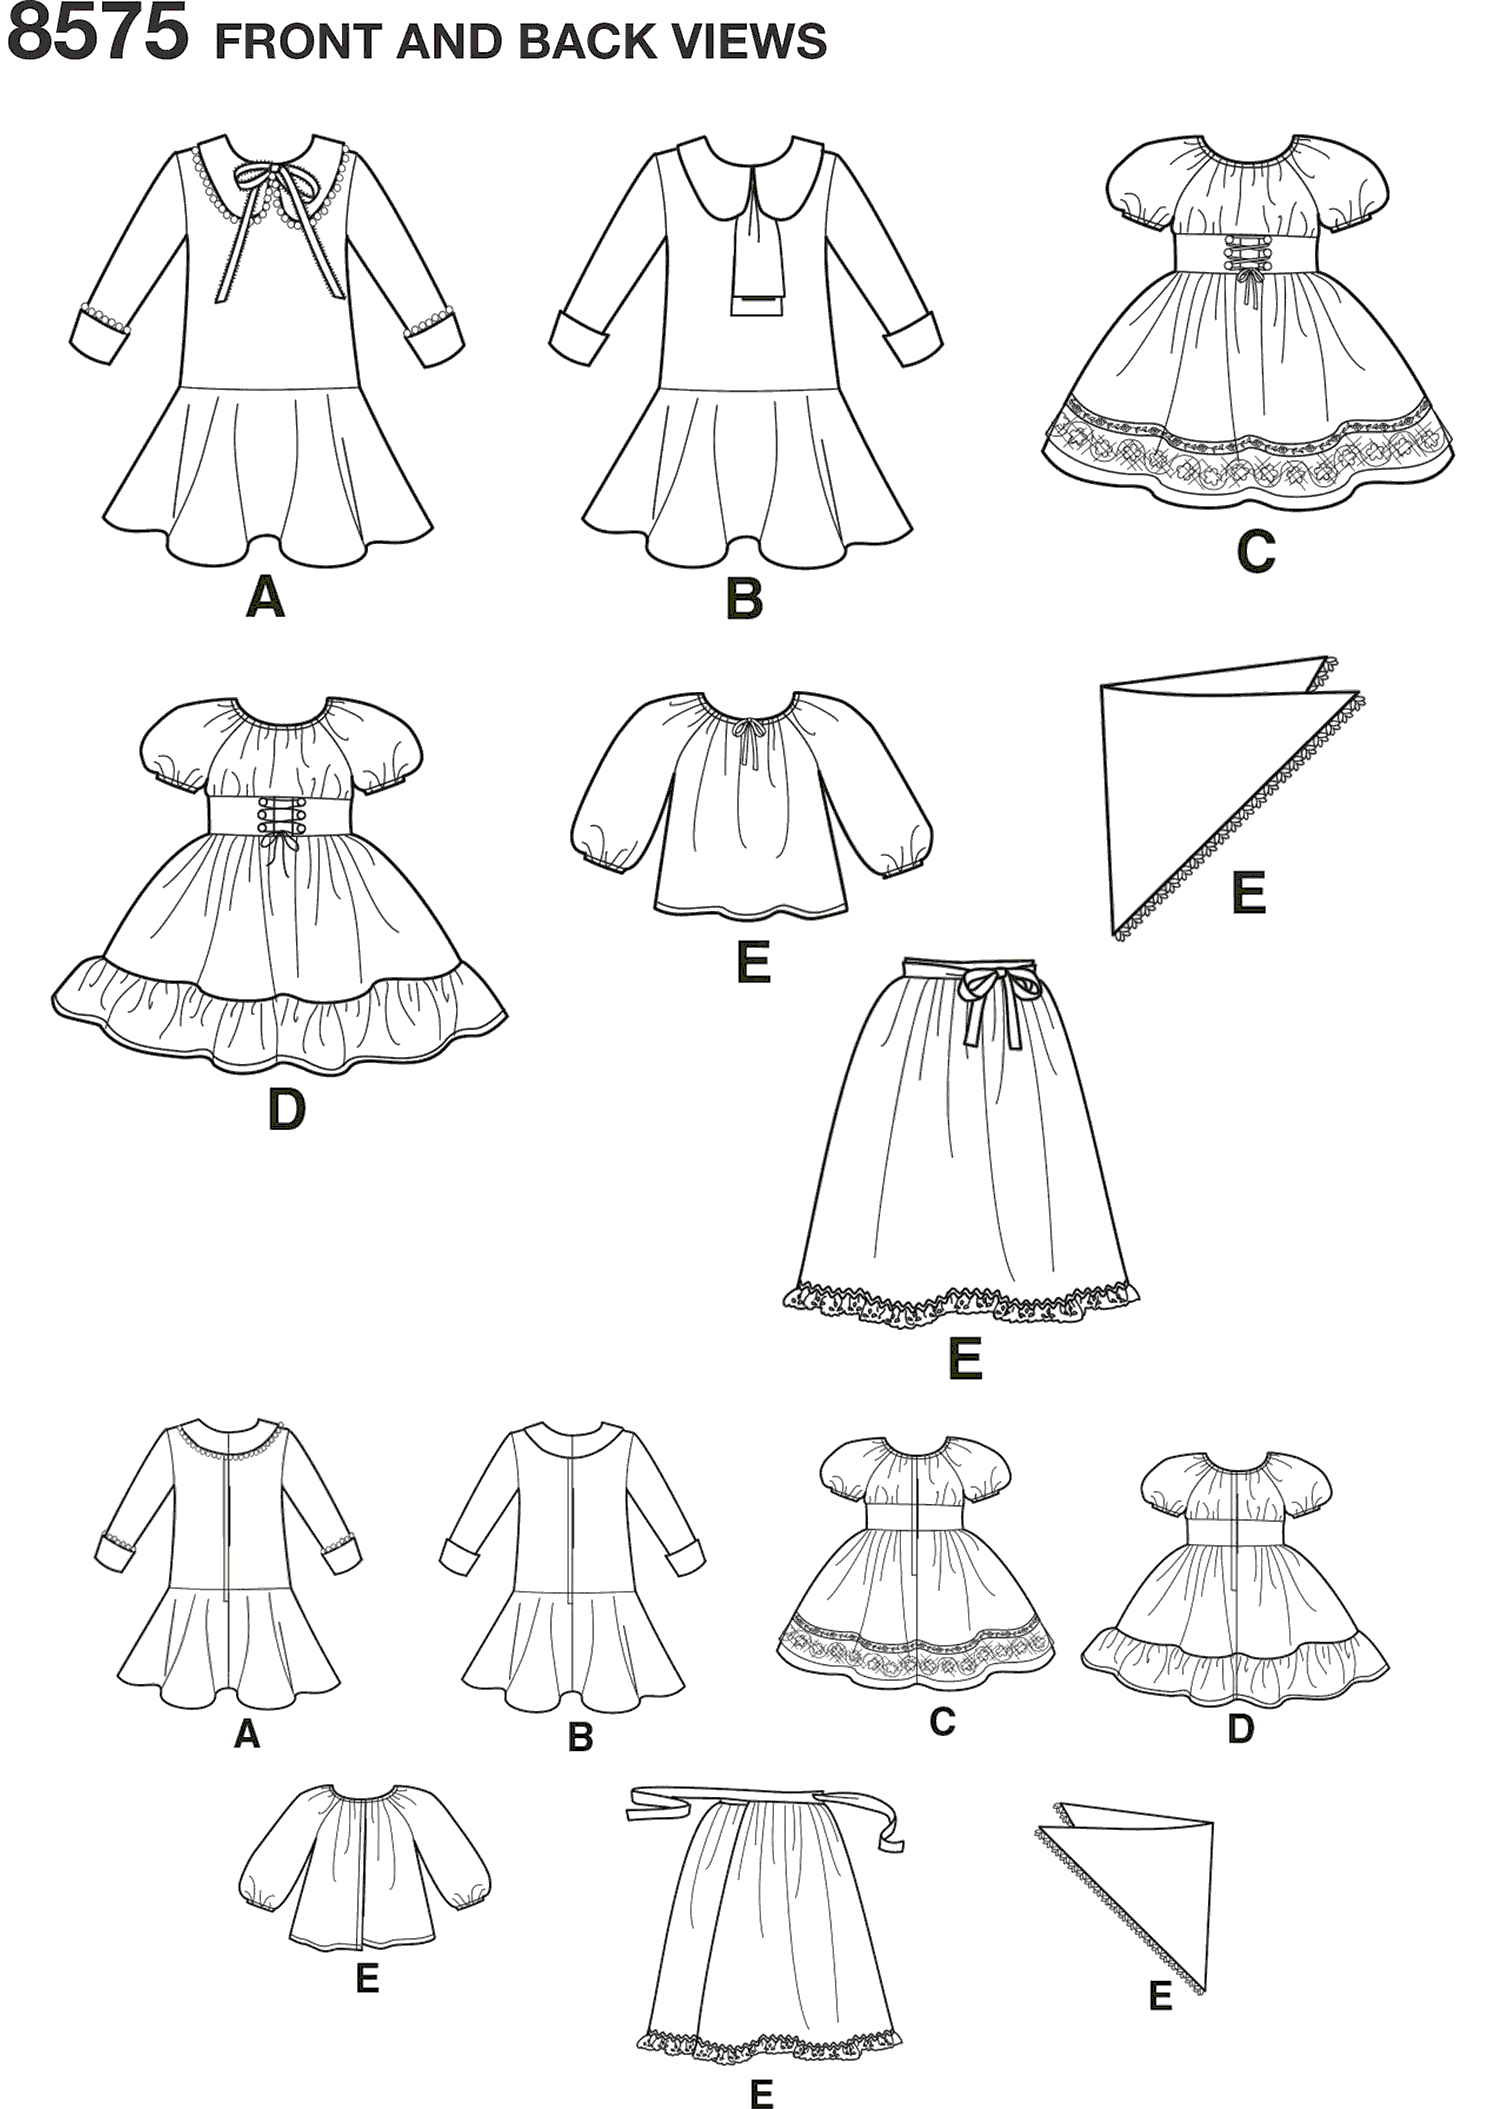 Simplicity Pattern 8575 18 Doll Clothes Line Art From Patternsandplains.com